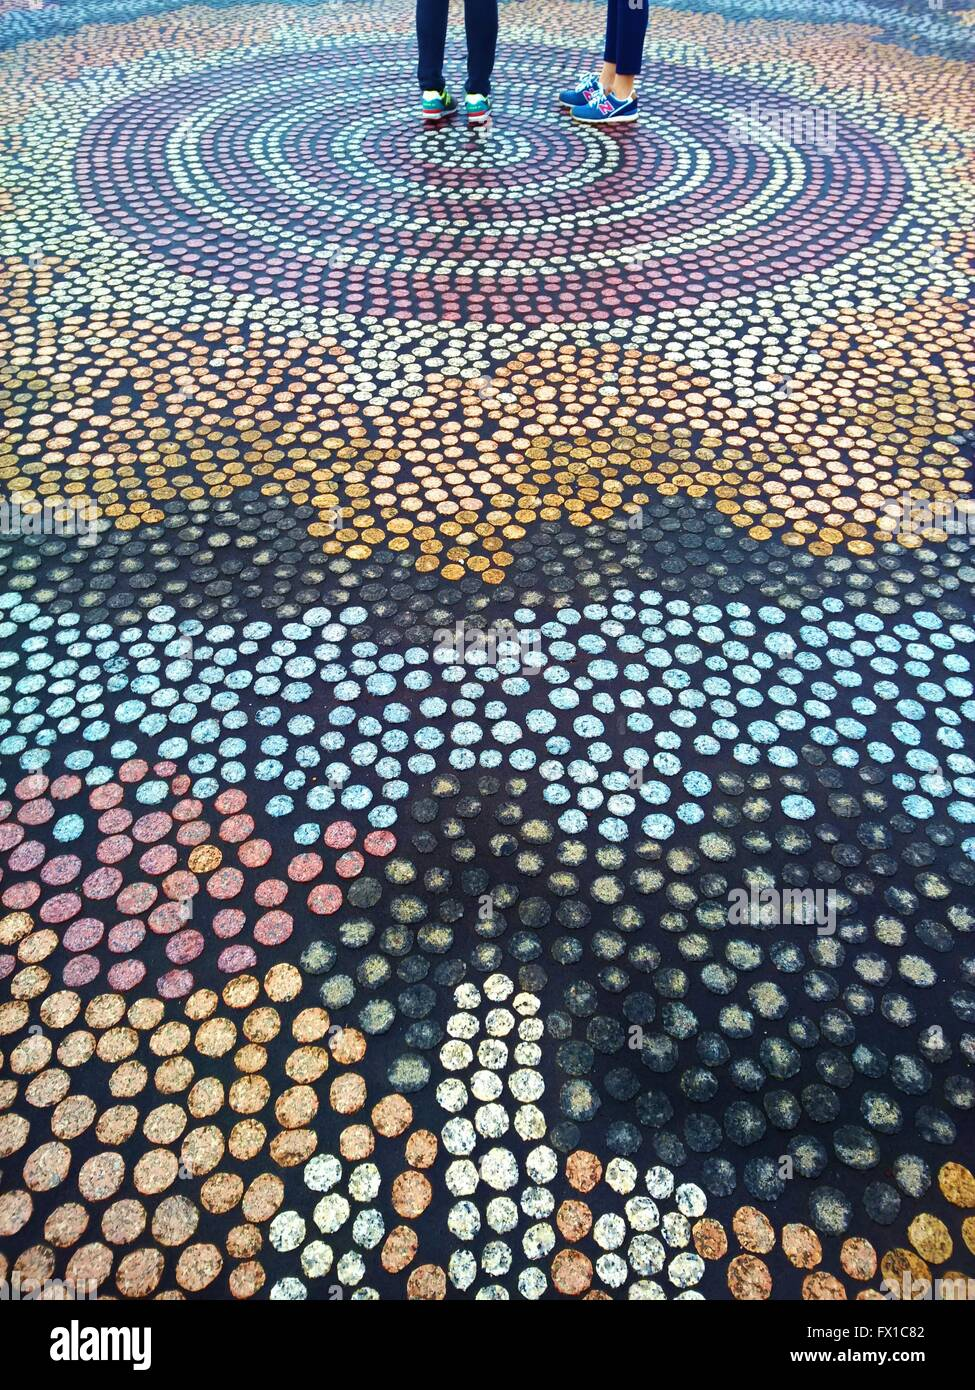 Tiles Outside the Parliament House, Canberra, Australia - Stock Image